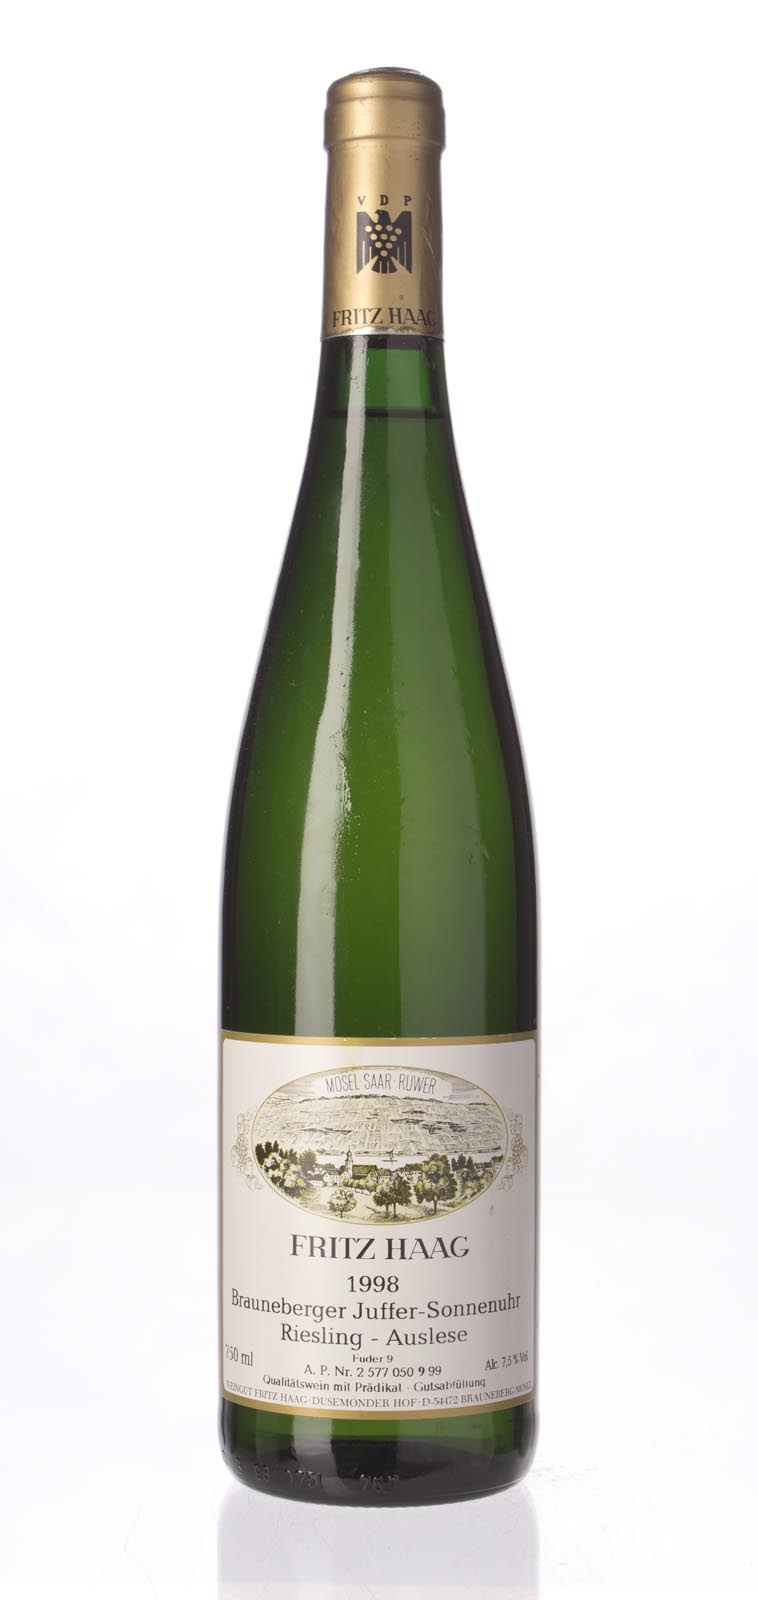 Fritz Haag Brauneberger Juffer Sonnenuhr Riesling Auslese Gold Capsule 1998, 750mL (WS91) from The BPW - Merchants of rare and fine wines.